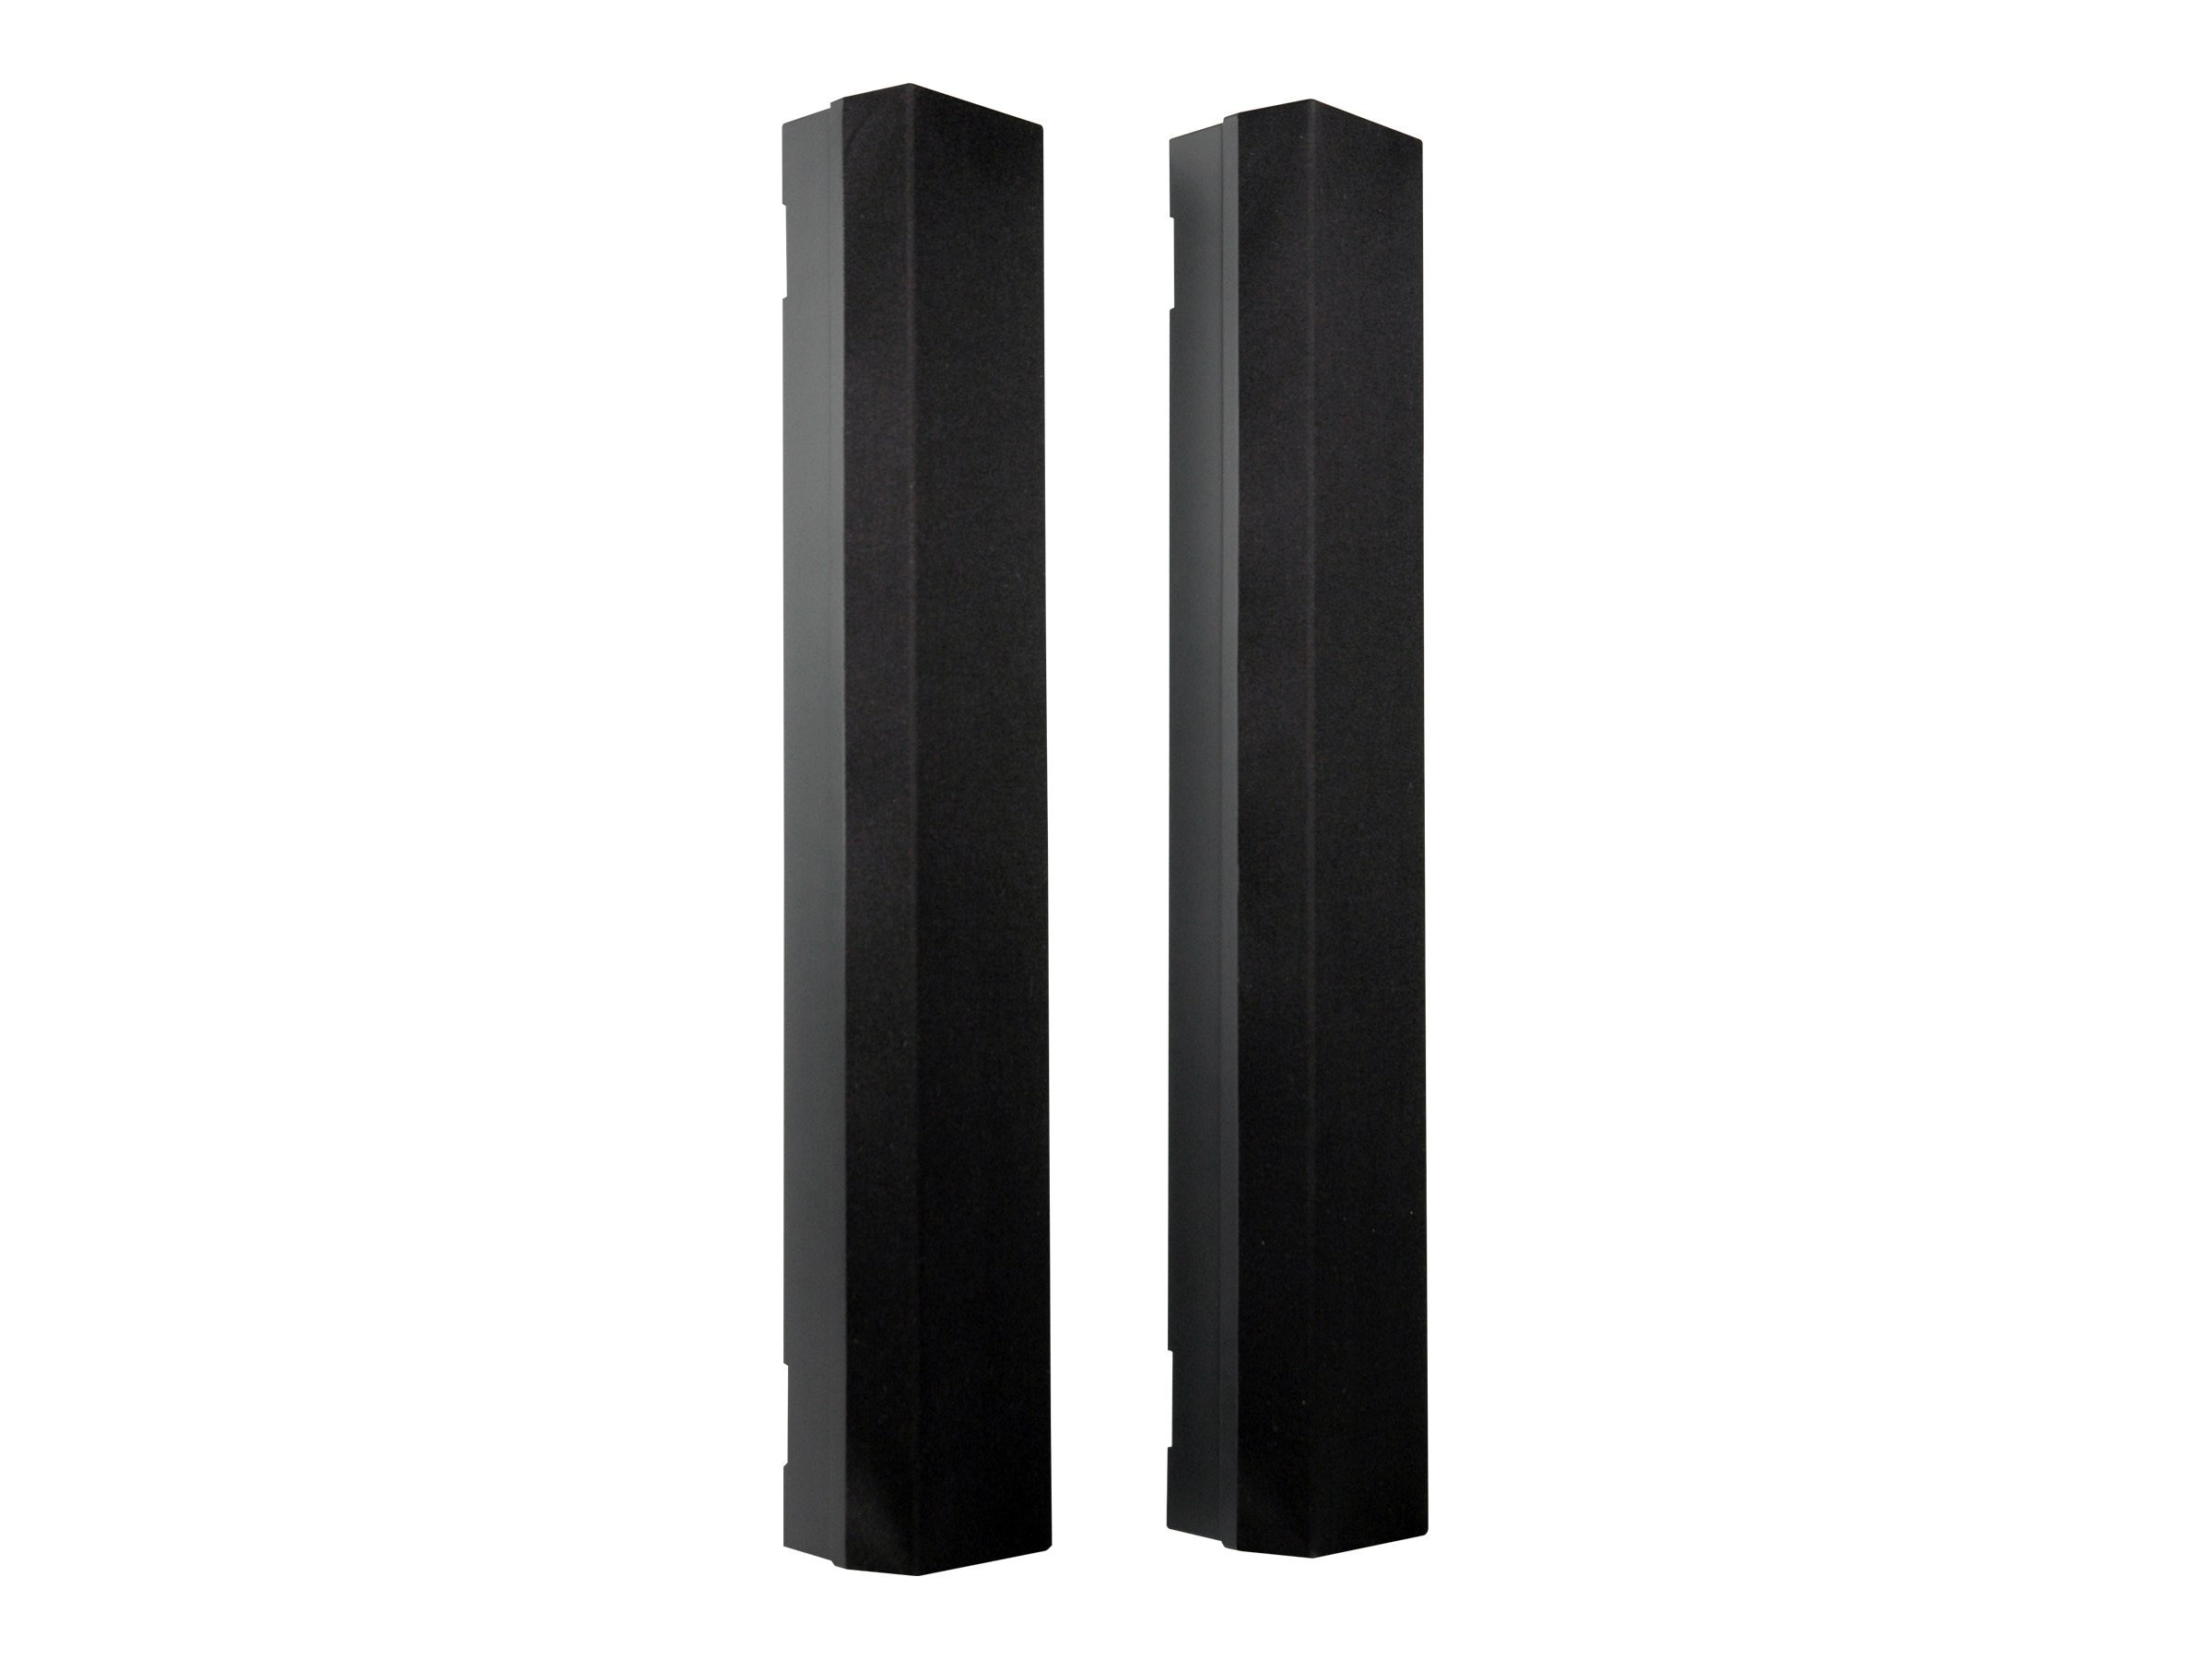 ViewSonic Speakers for CD4233